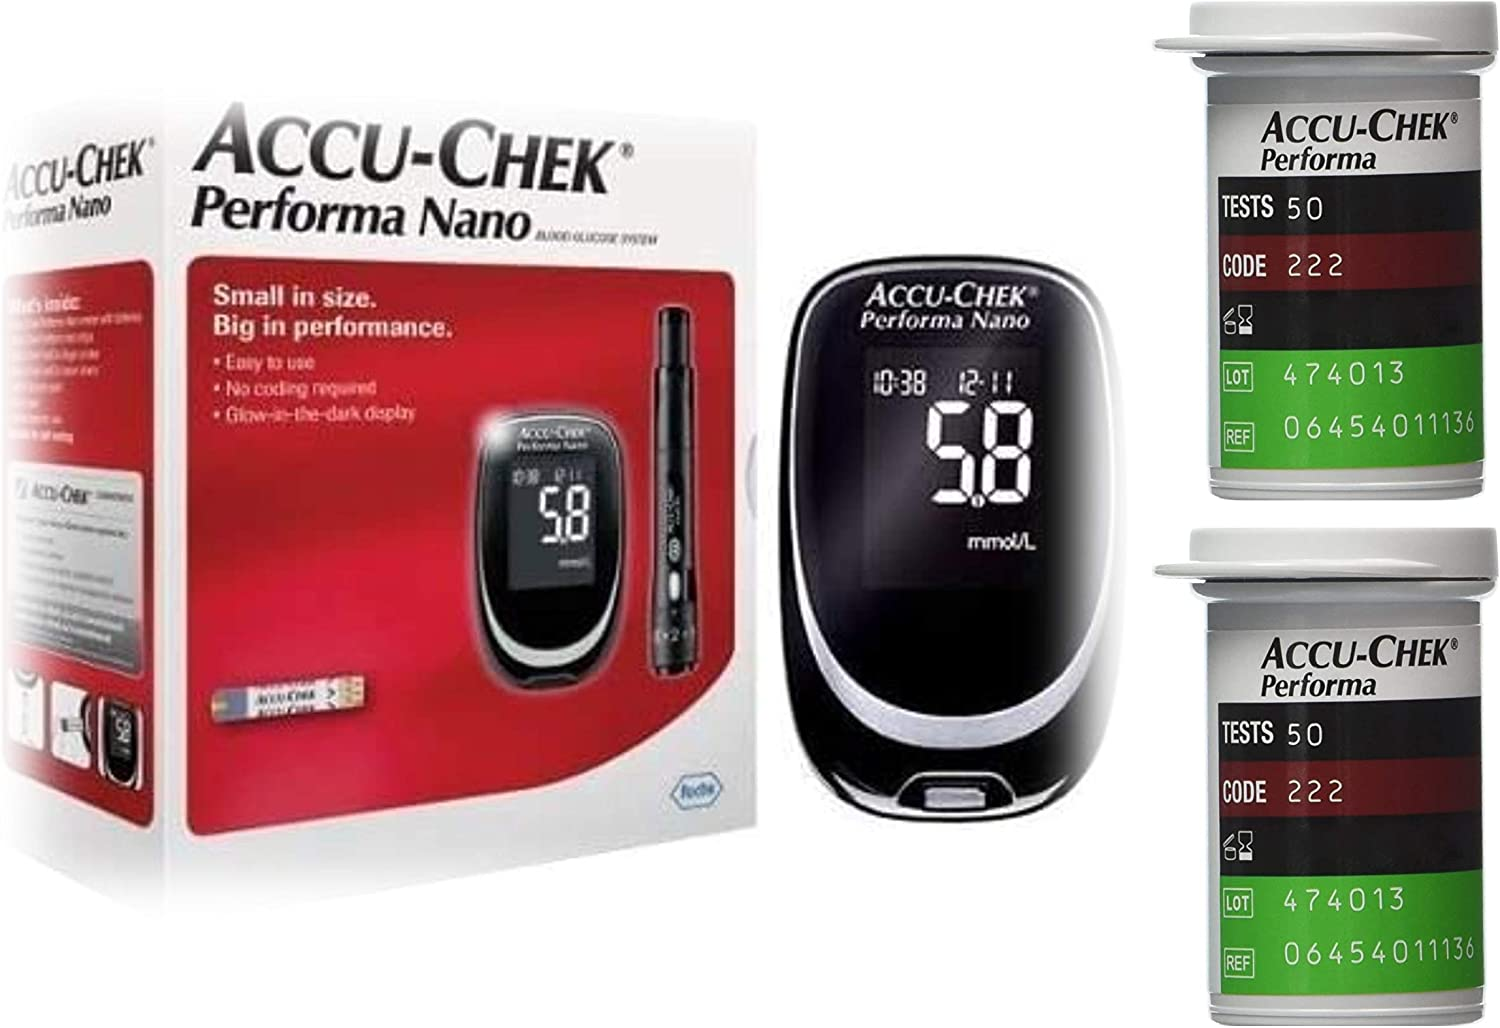 Accu-Chek Performa Nano Blood Glucose Diabetic Meter/Monitor/System with 2x50 Test Strips Diabetic Glucose Sealed